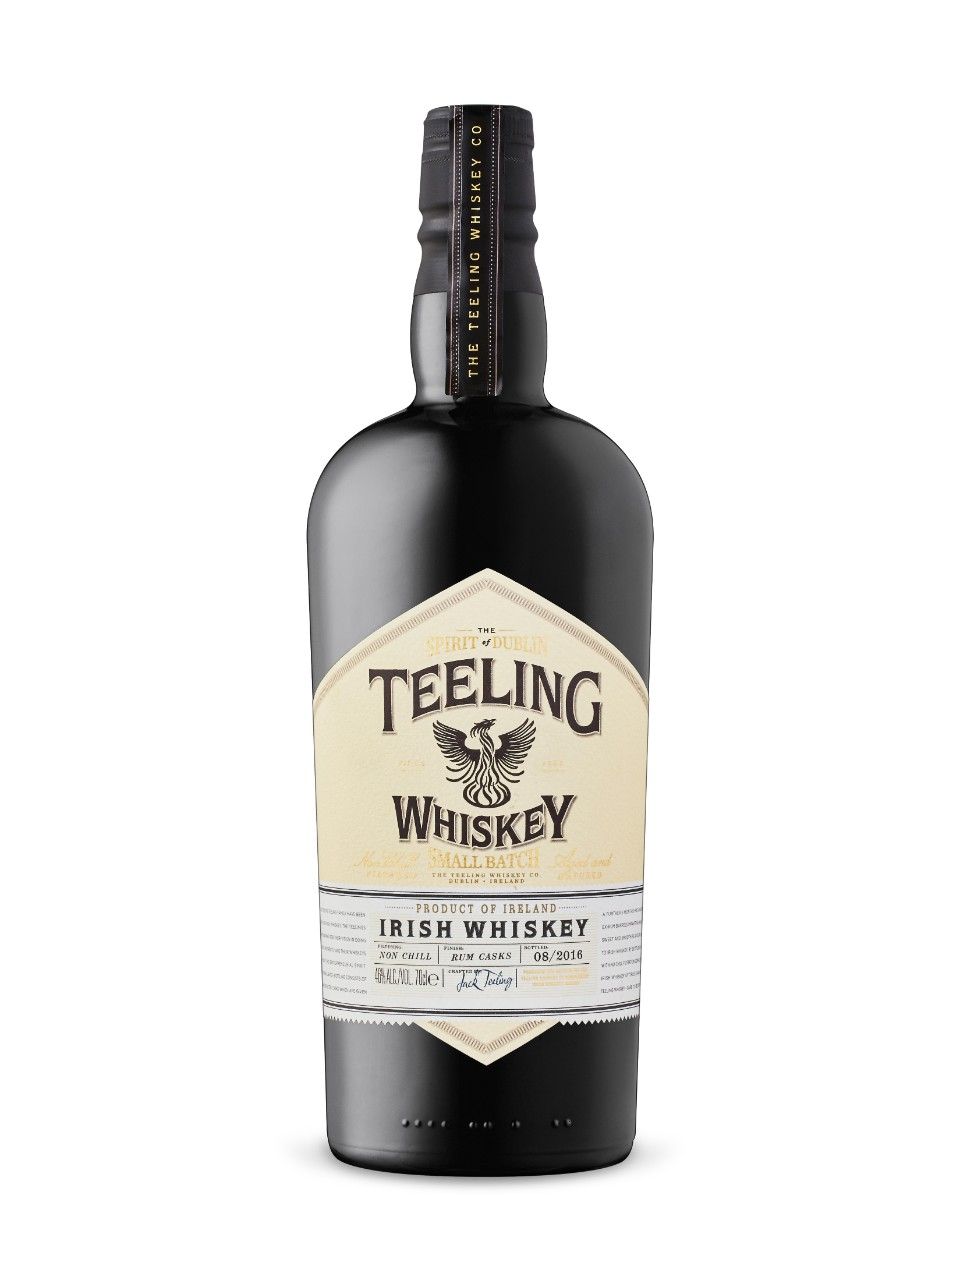 Bevvy of the Week - Small Batch Teeling Whiskey